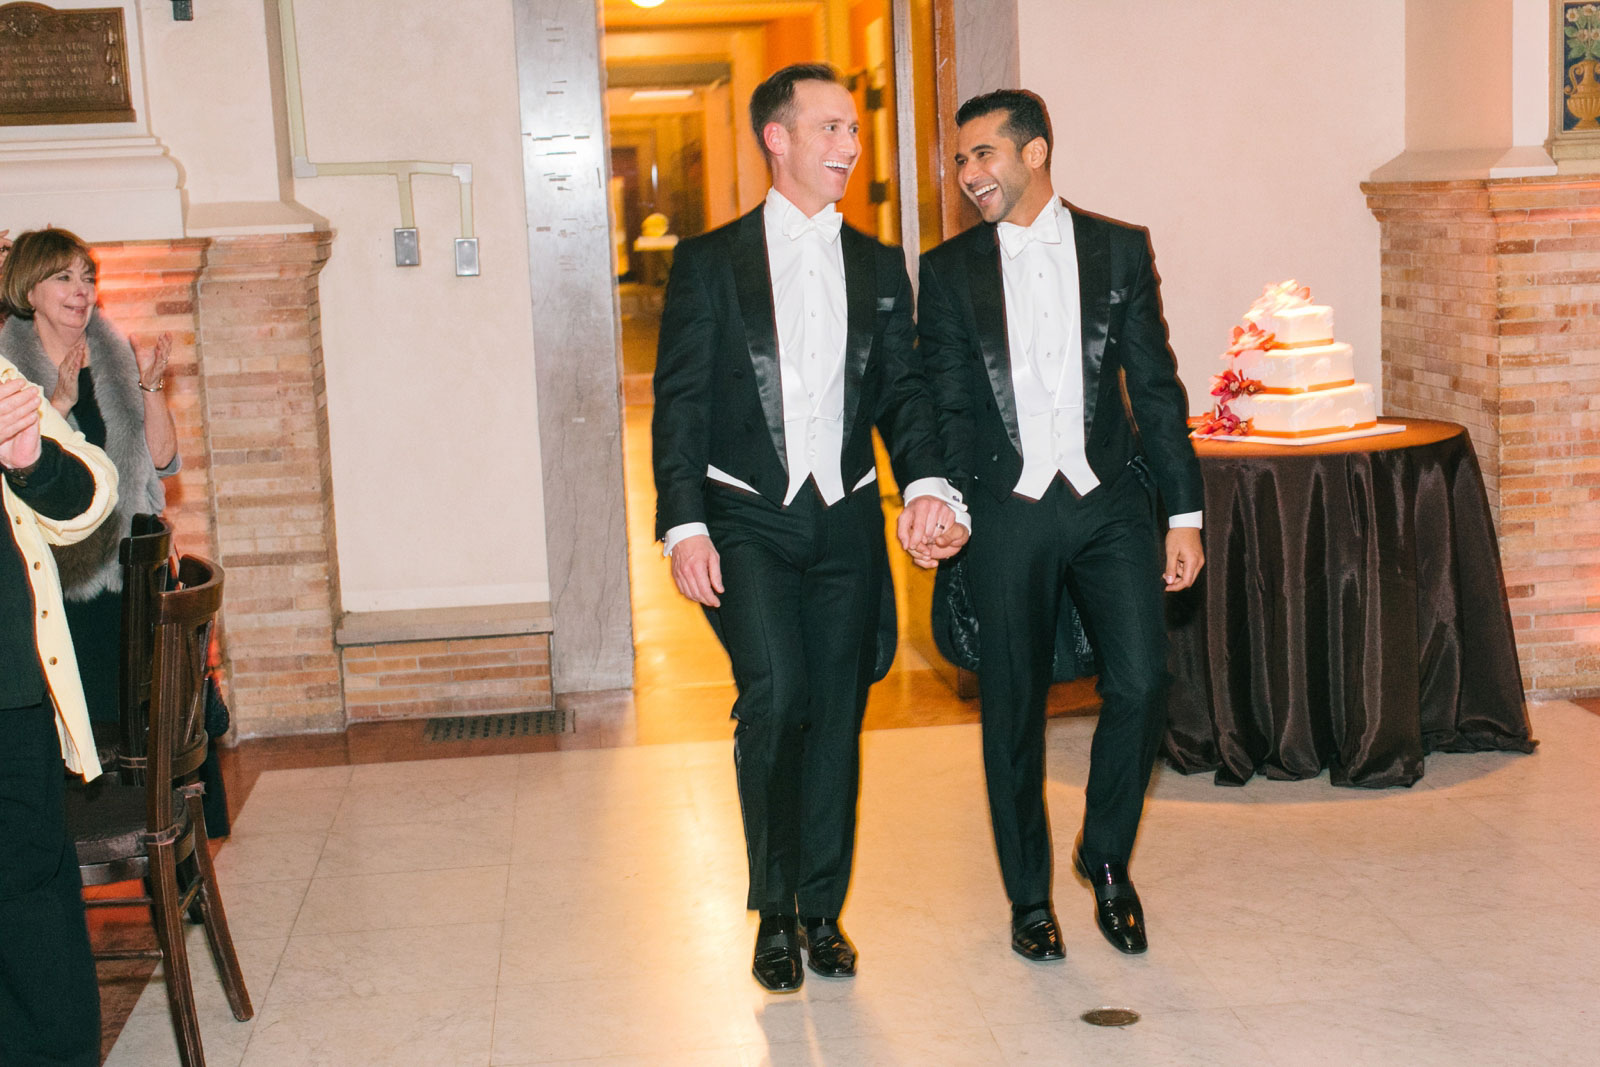 Couple enters their reception at the Boston public library holding hands, same-sex wedding